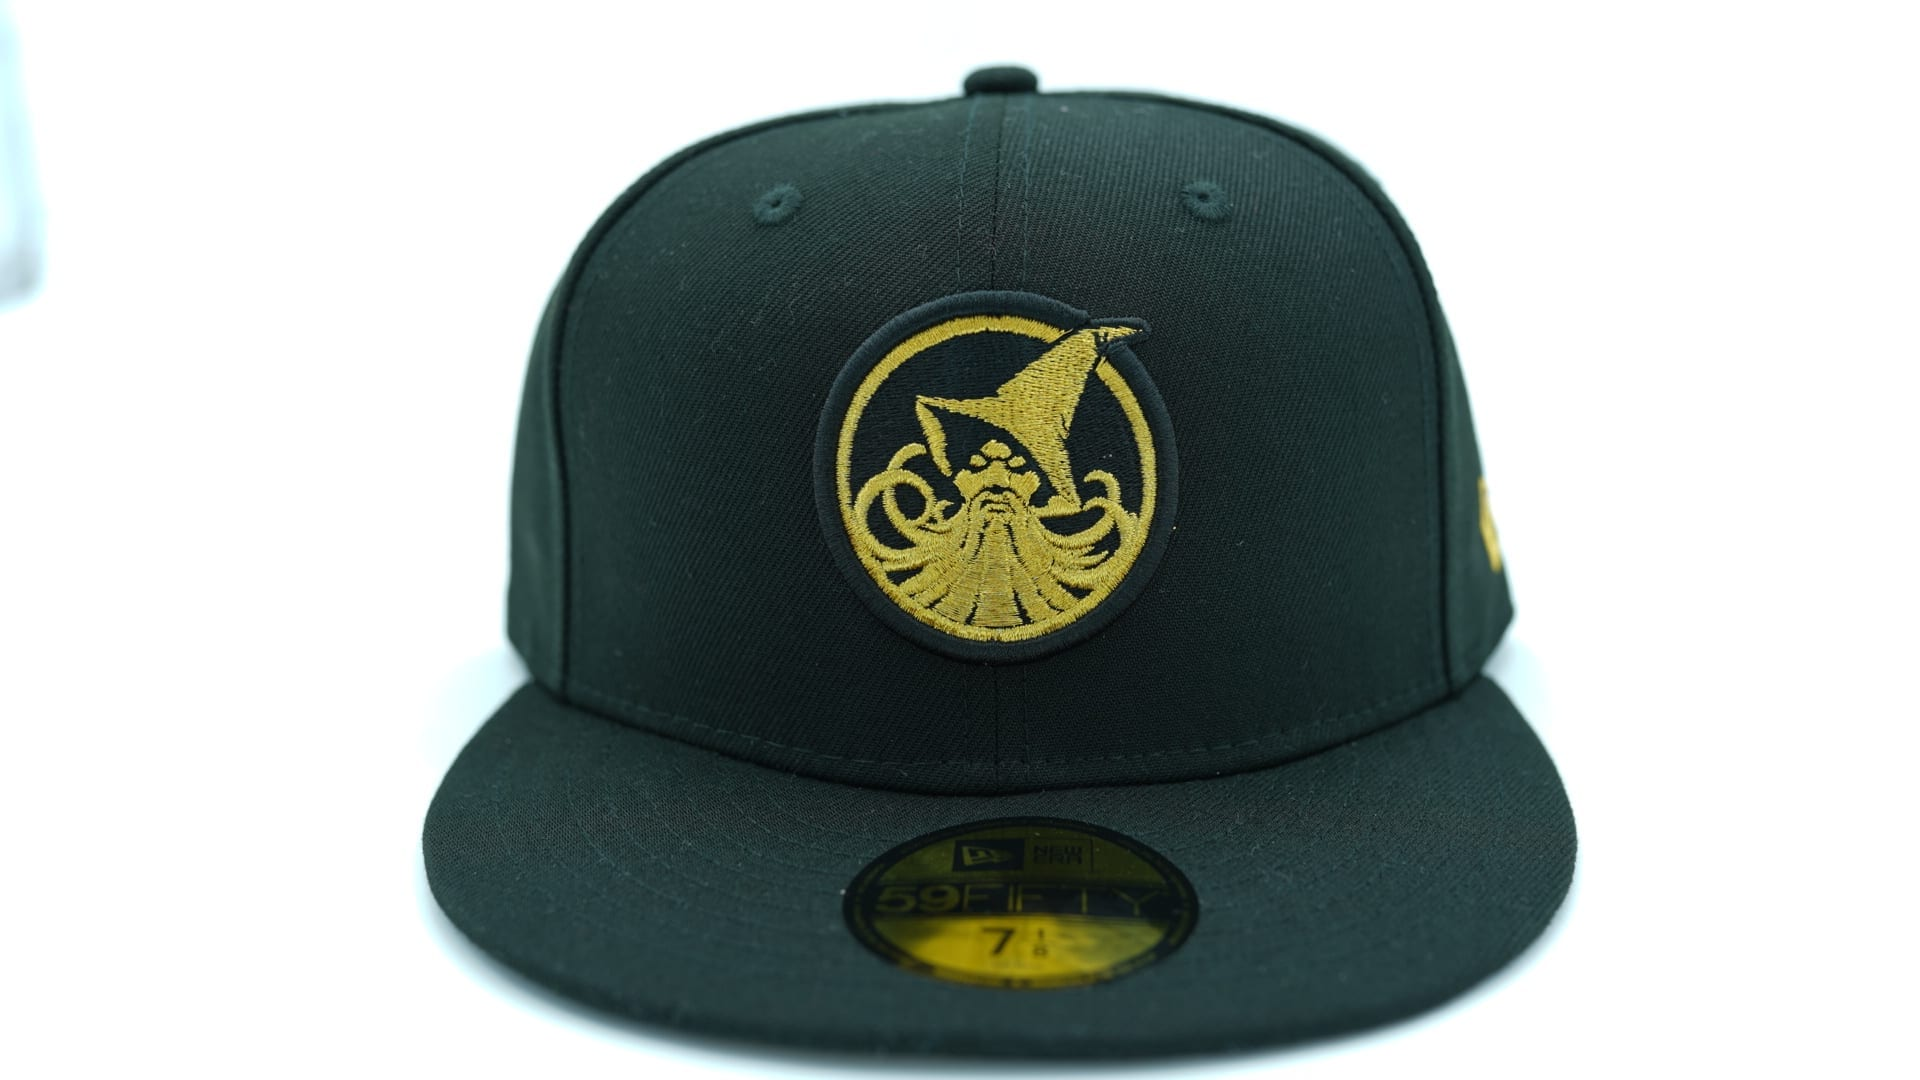 345657433f21d 1957 Hollywood Stars Fitted Baseball Cap. New headwear styles have landed  at EBBETS FIELD FLANNELS.